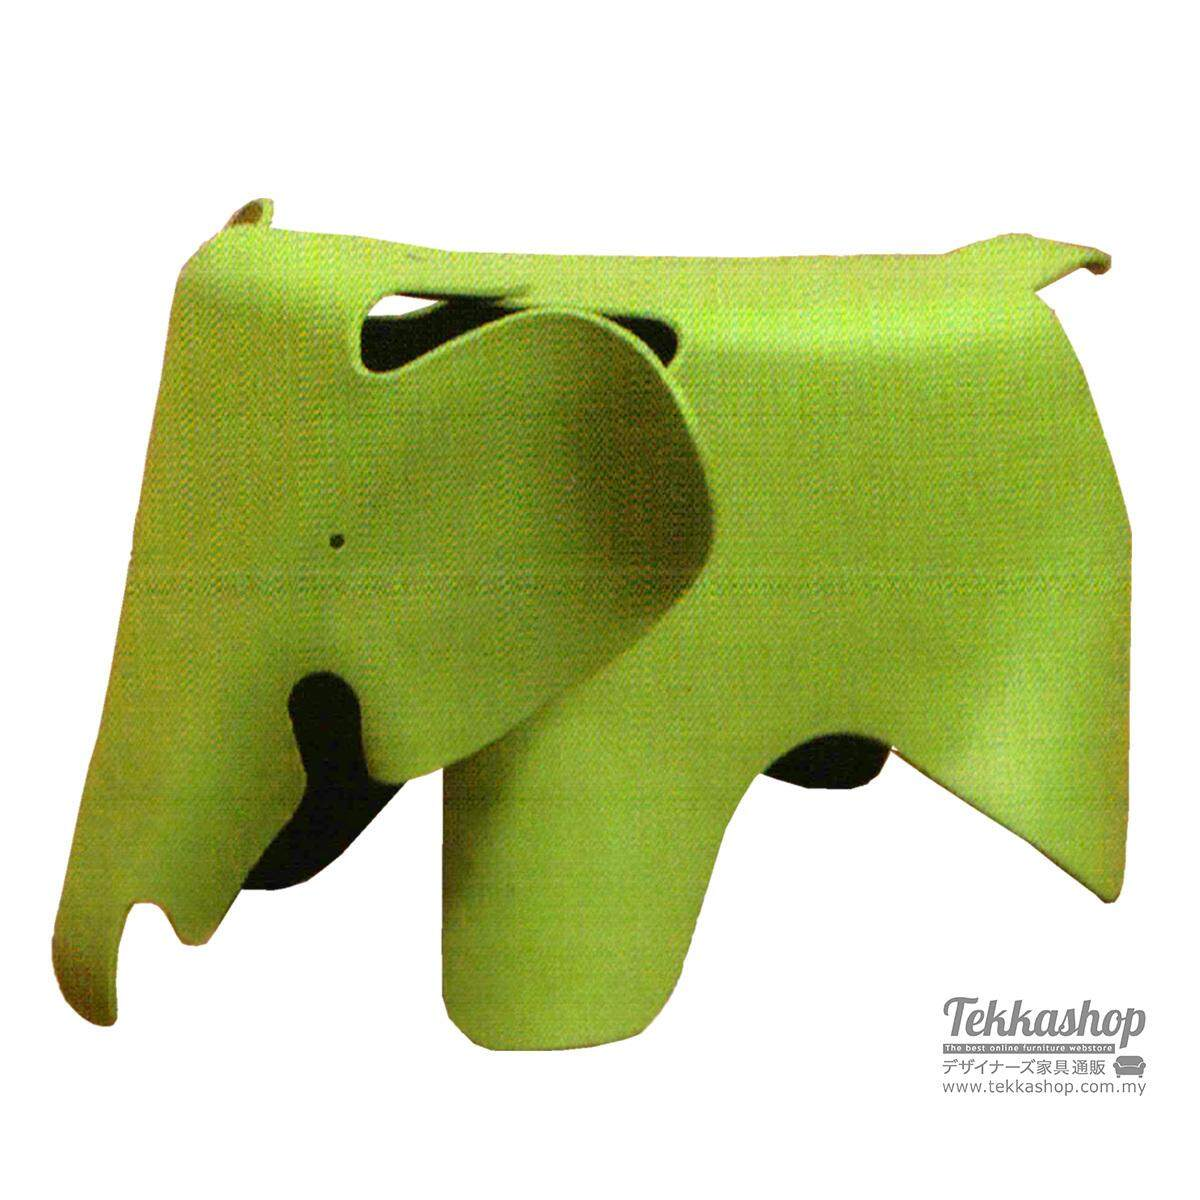 Tekkashop KKM3158LC Kindergarden Kid Furniture Funky Elephant Ottoman Seat, Green